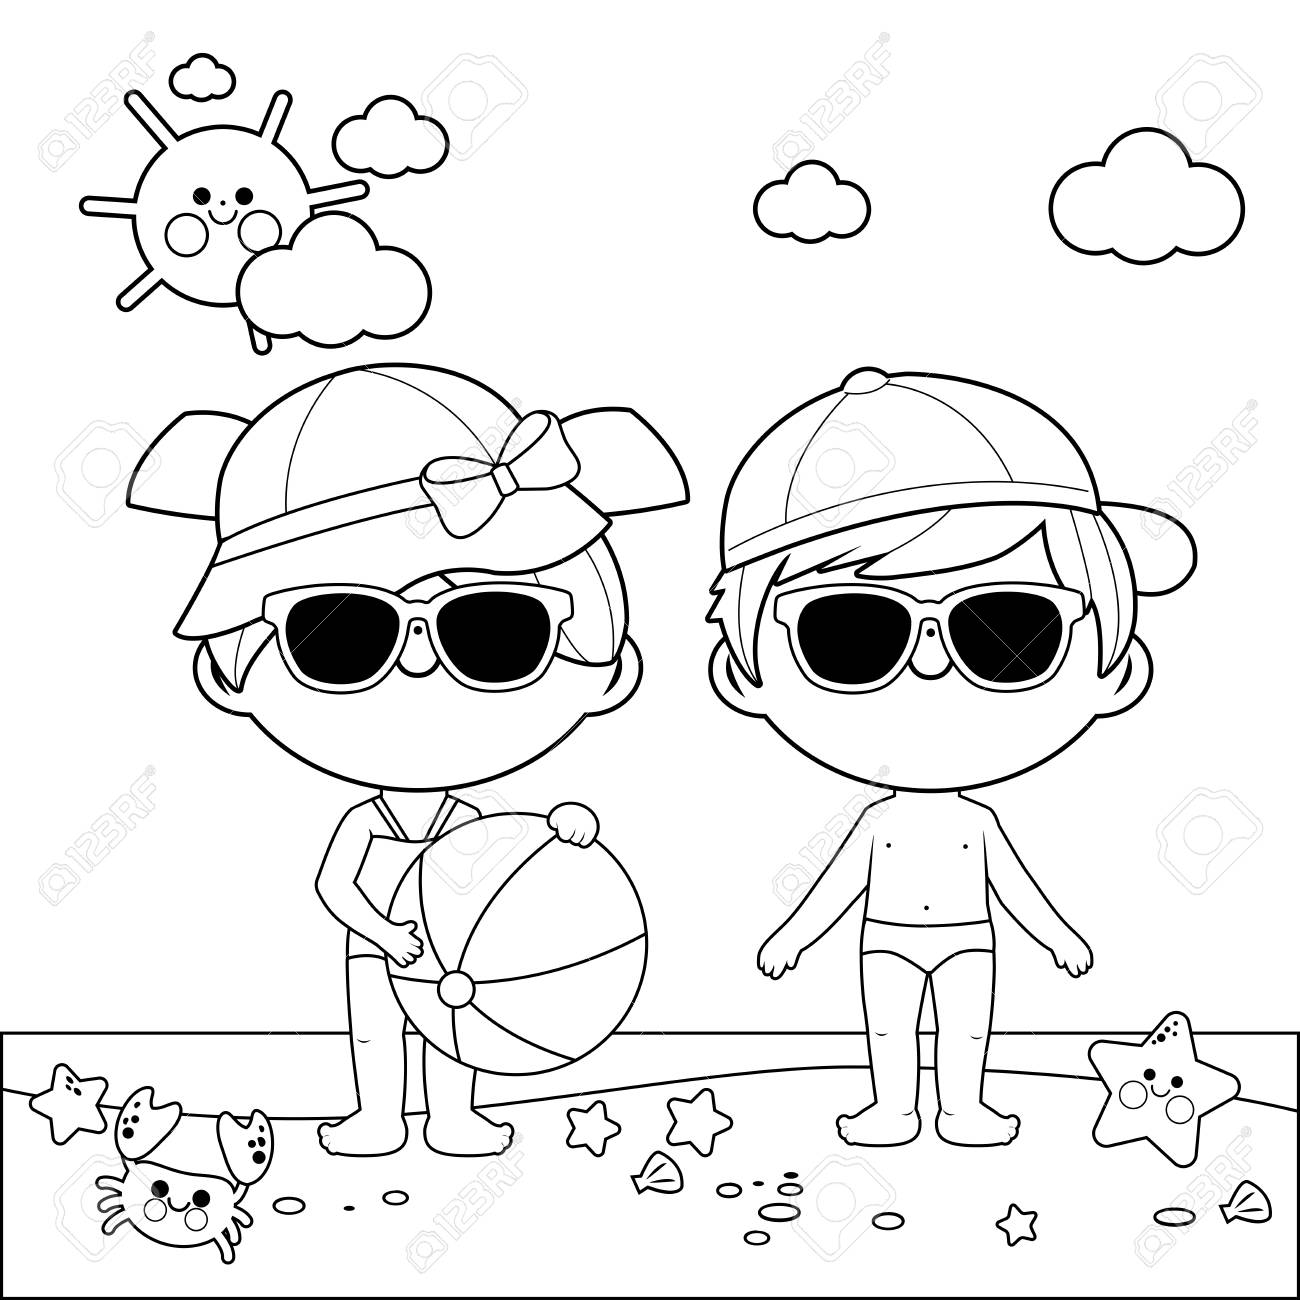 Bunny with Eyeglasses Free Coloring Pages for Kids - Printable ... | 1300x1300